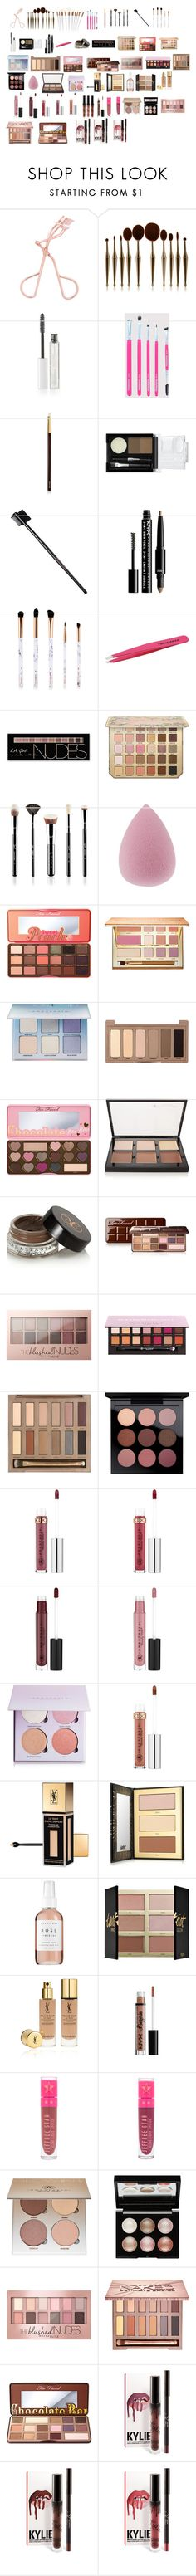 """""""Top favorite makeup"""" by babyceeee ❤ liked on Polyvore featuring beauty, BBrowBar, Tom Ford, NYX, Glamour Status, Tweezerman, Charlotte Russe, Sigma, Too Faced Cosmetics and tarte"""